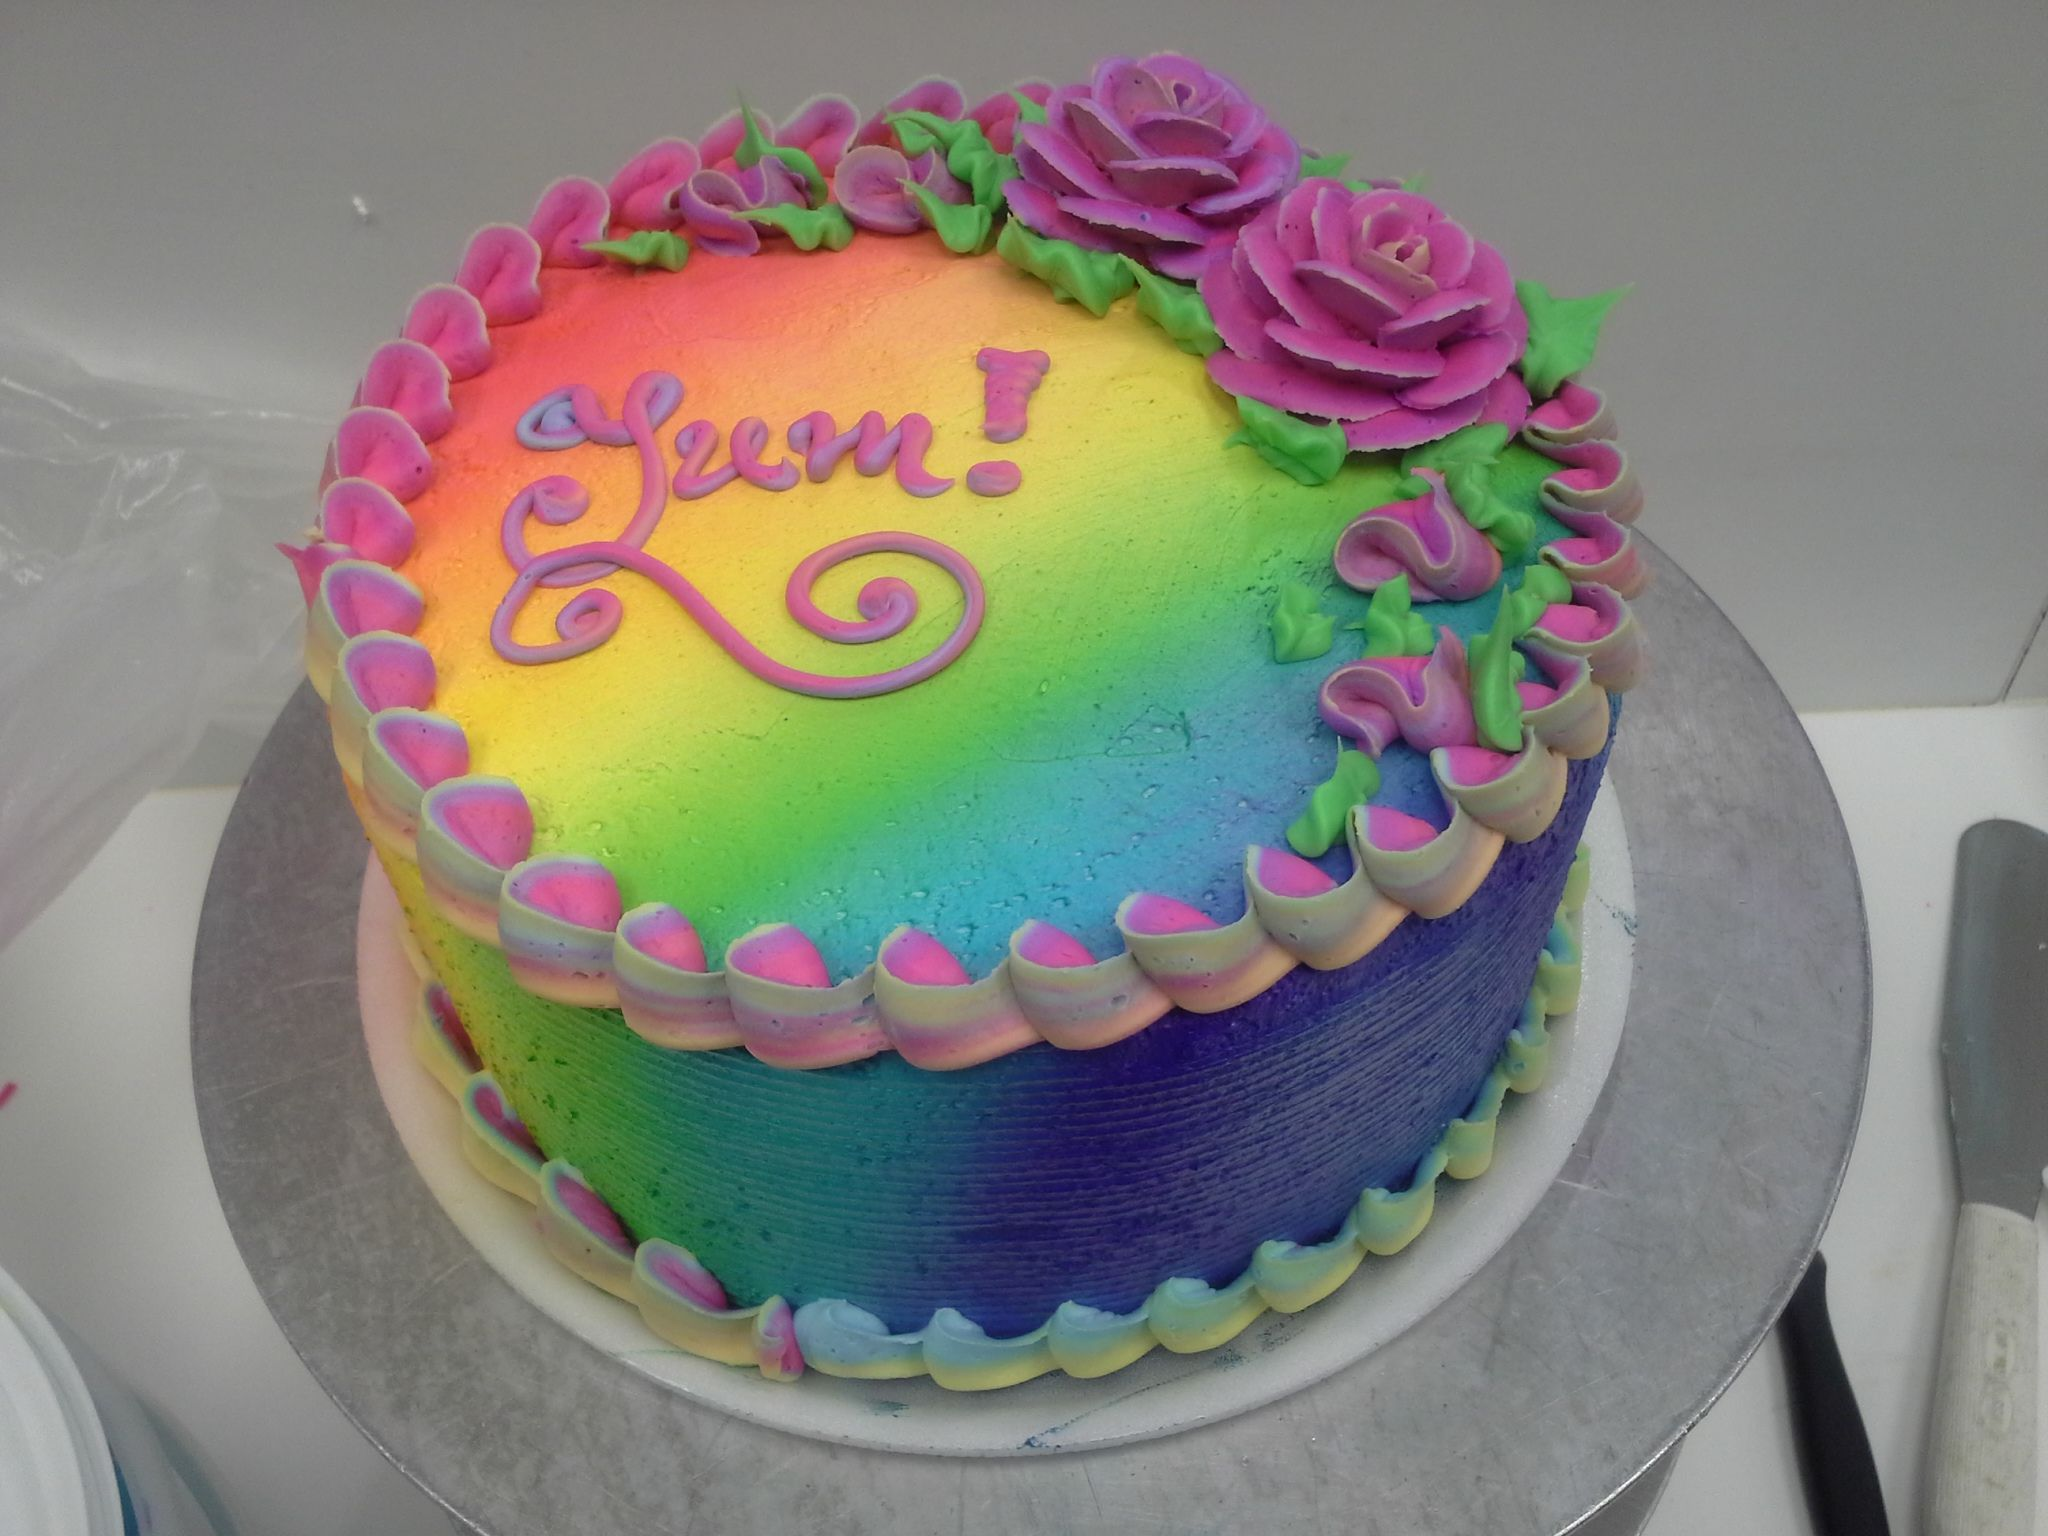 Painting Color On Cake Instead Of Airbrush